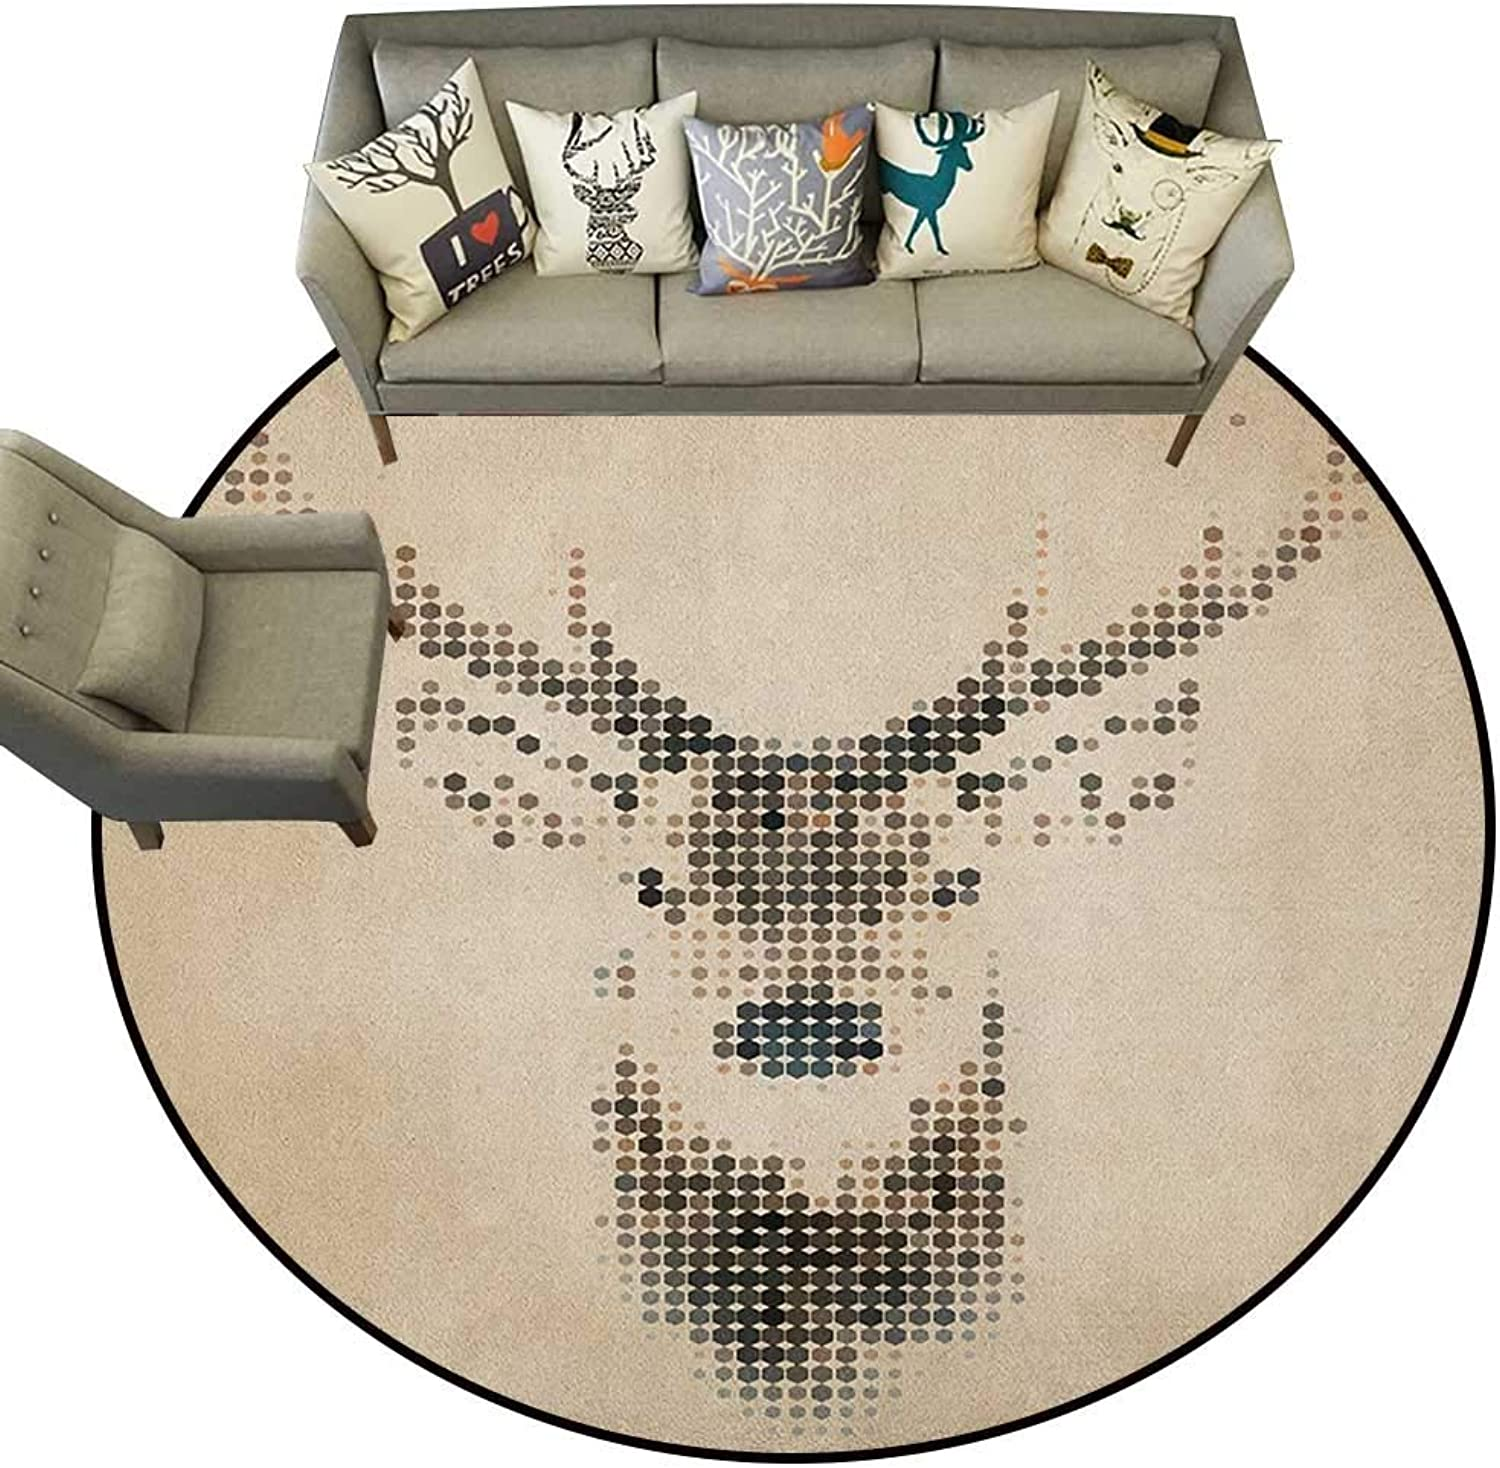 Deer,Personalized Floor mats Retro Style Deer Portrait with Digital Dots and Geometric Circle Vintage Graphic D40 Floor Mat Entrance Doormat